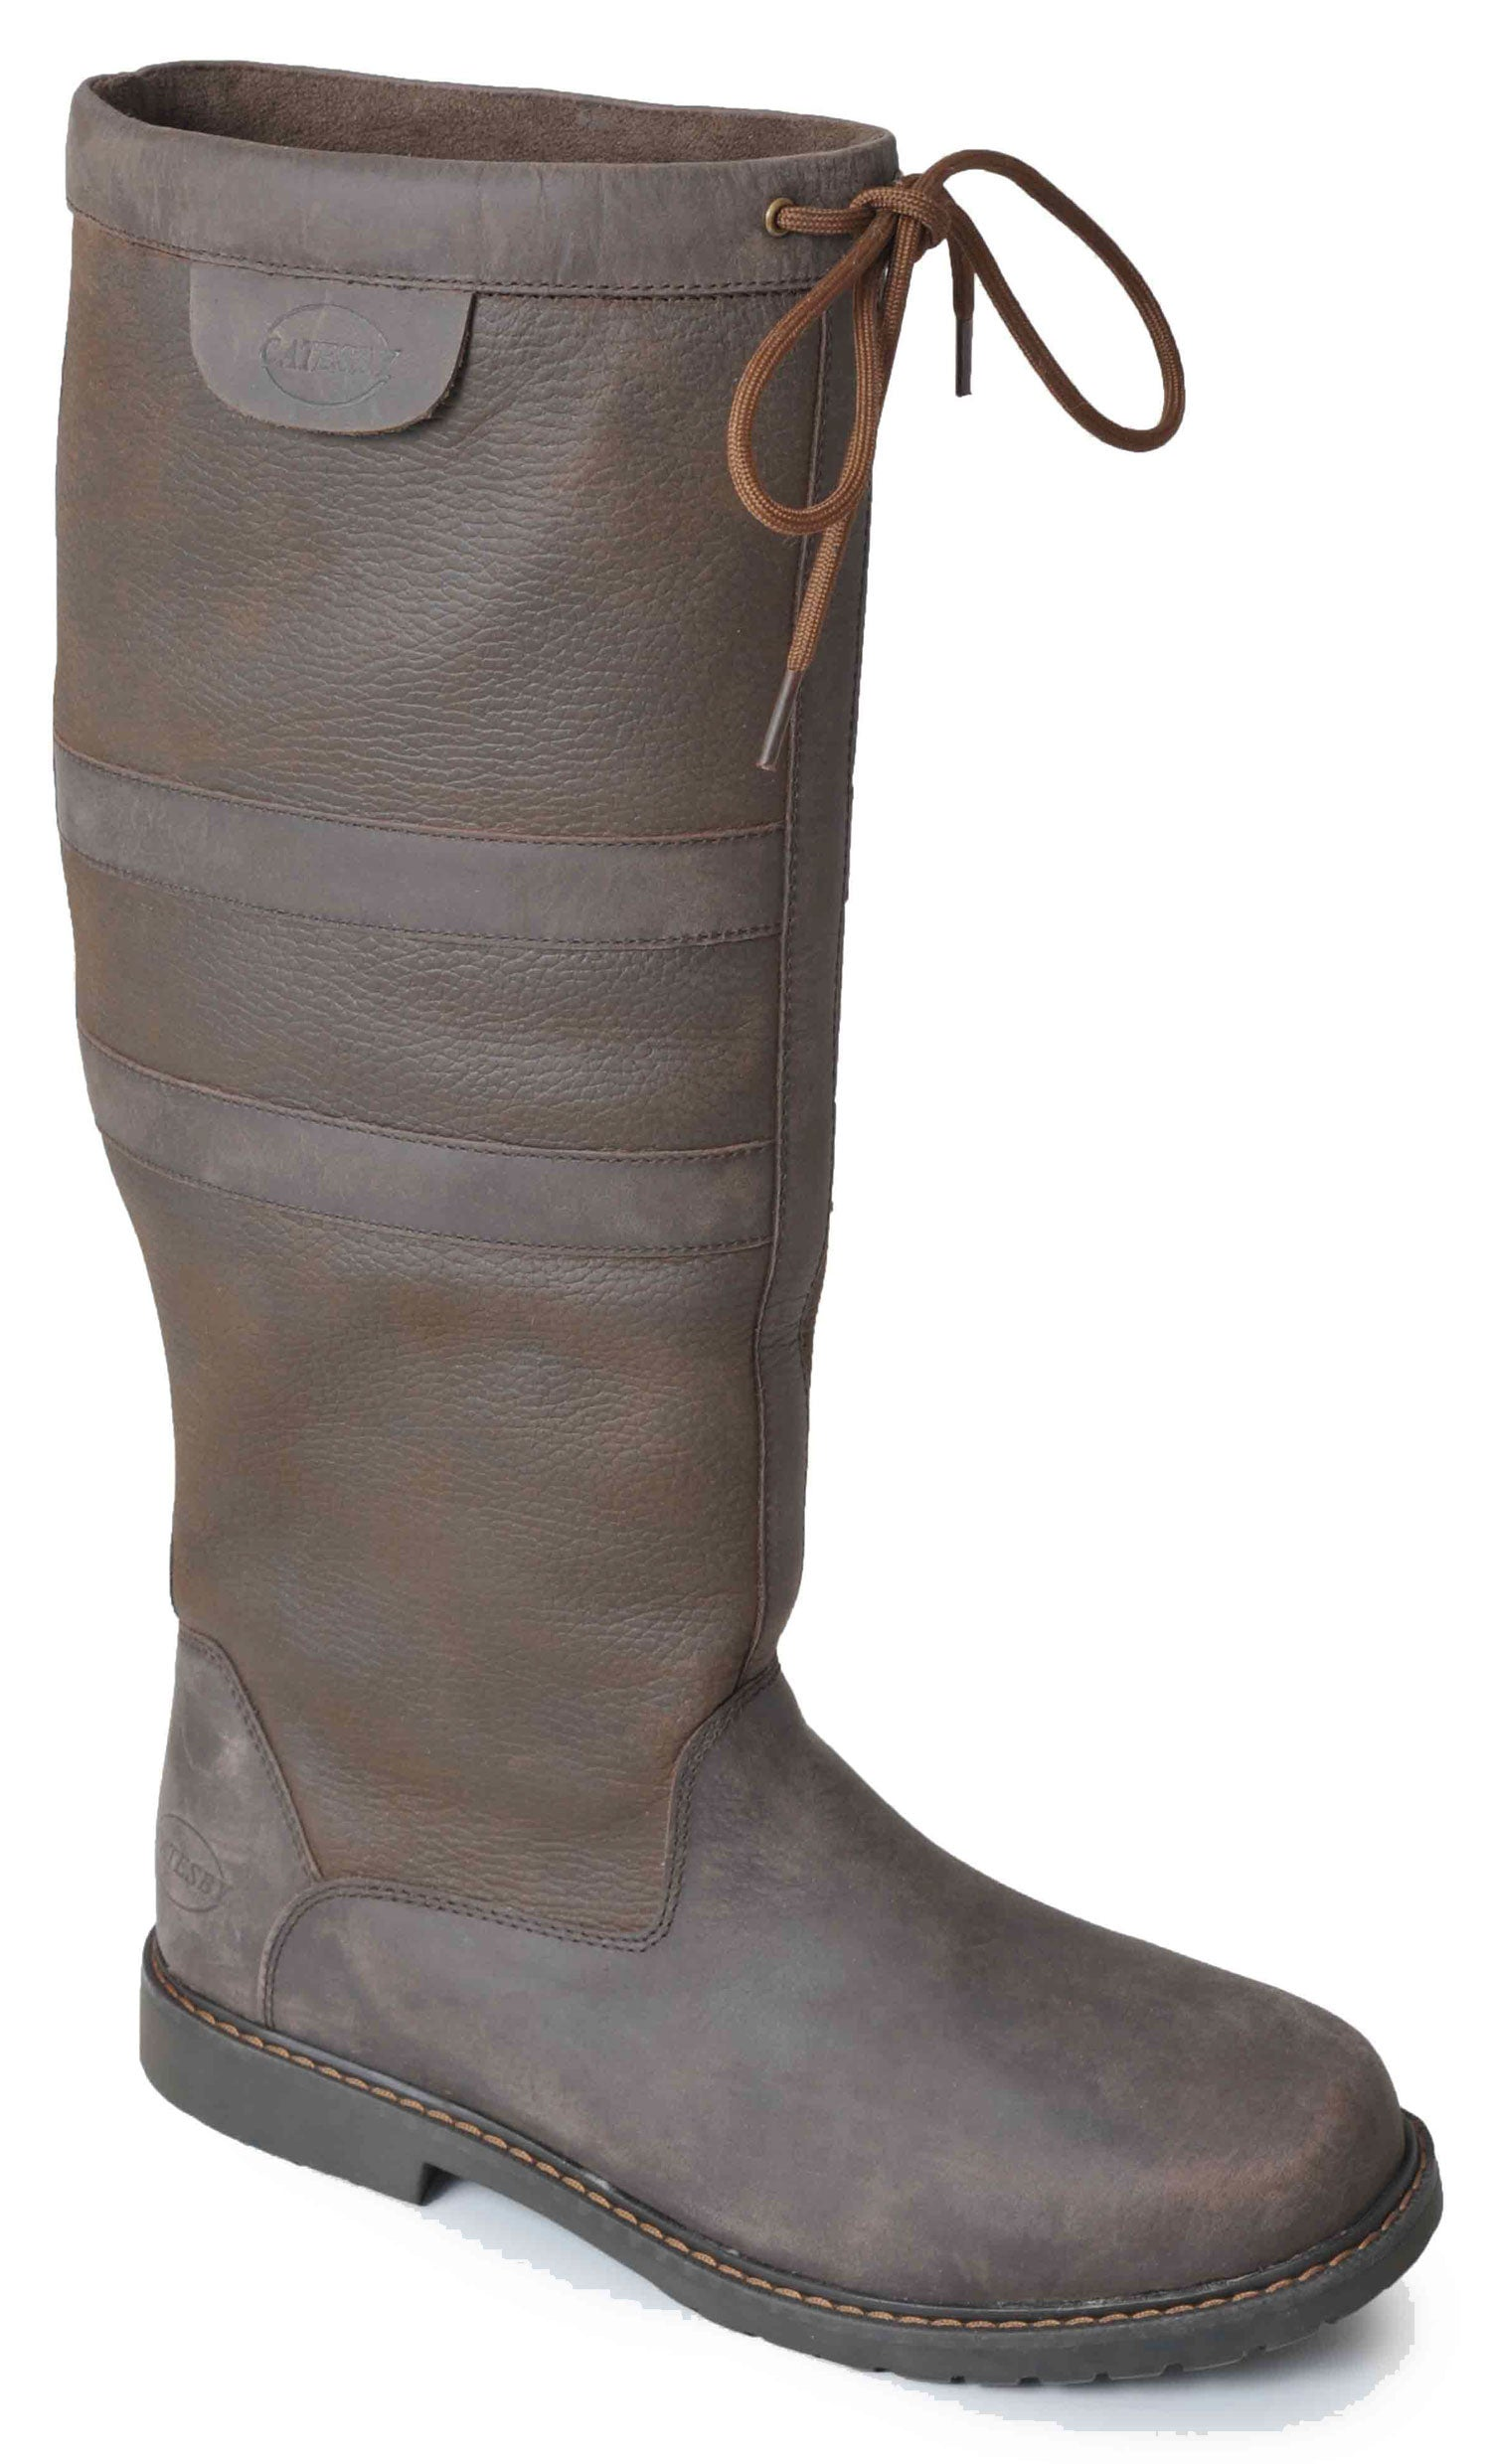 6d261673194 Catesby Stratford II Comfort Fit Leather Country Boot – Hollands ...